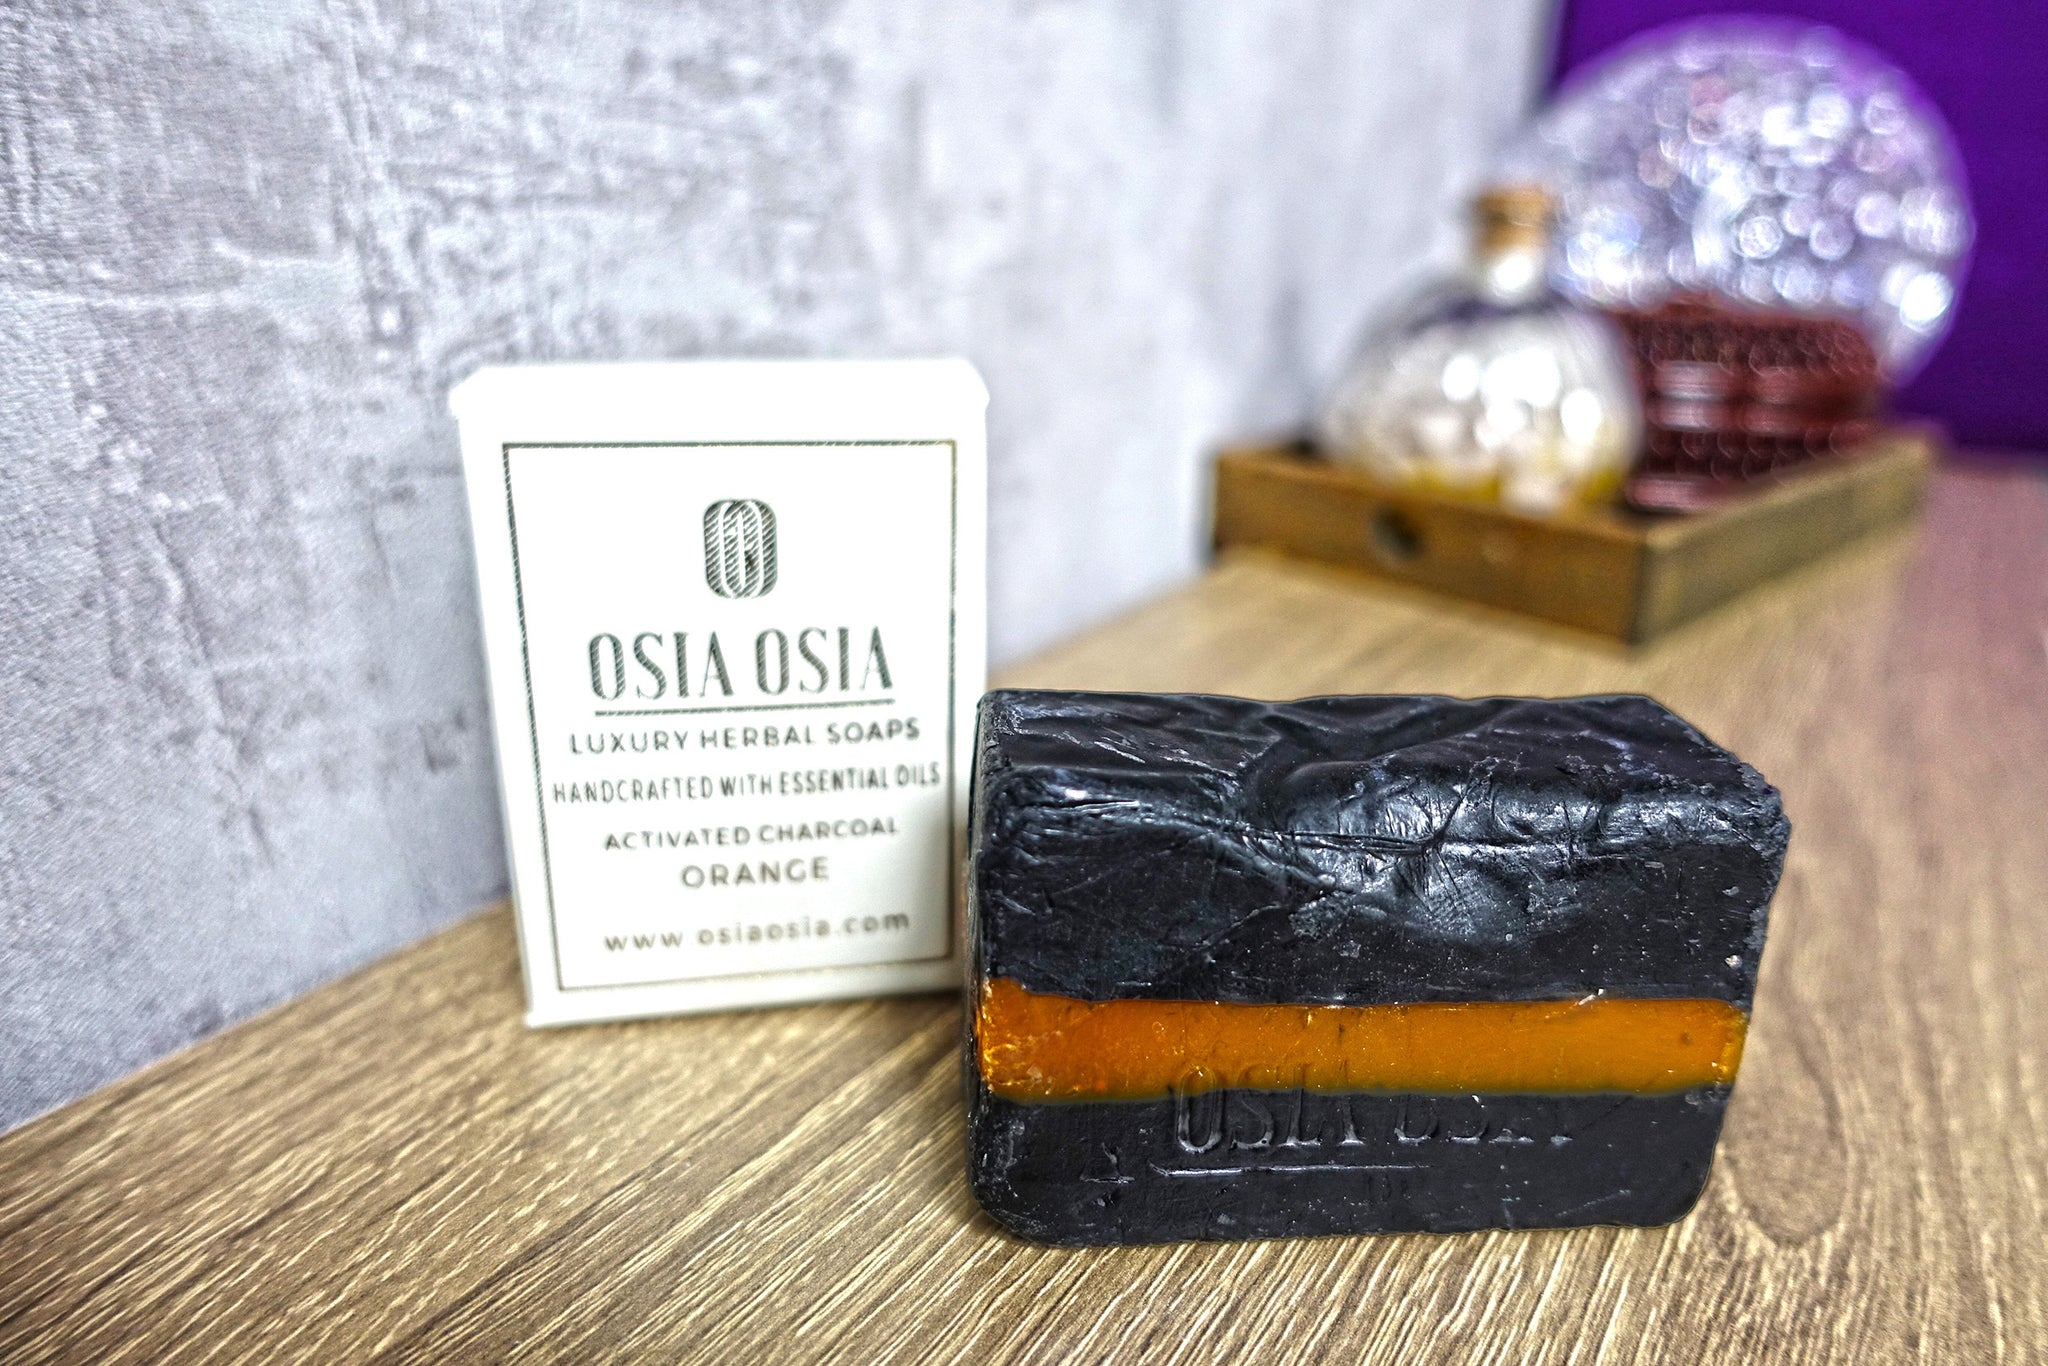 Activated Charcoal Orange Handcrafted Luxury Herbal Soap 活性炭甜橙精華手工去角質皂